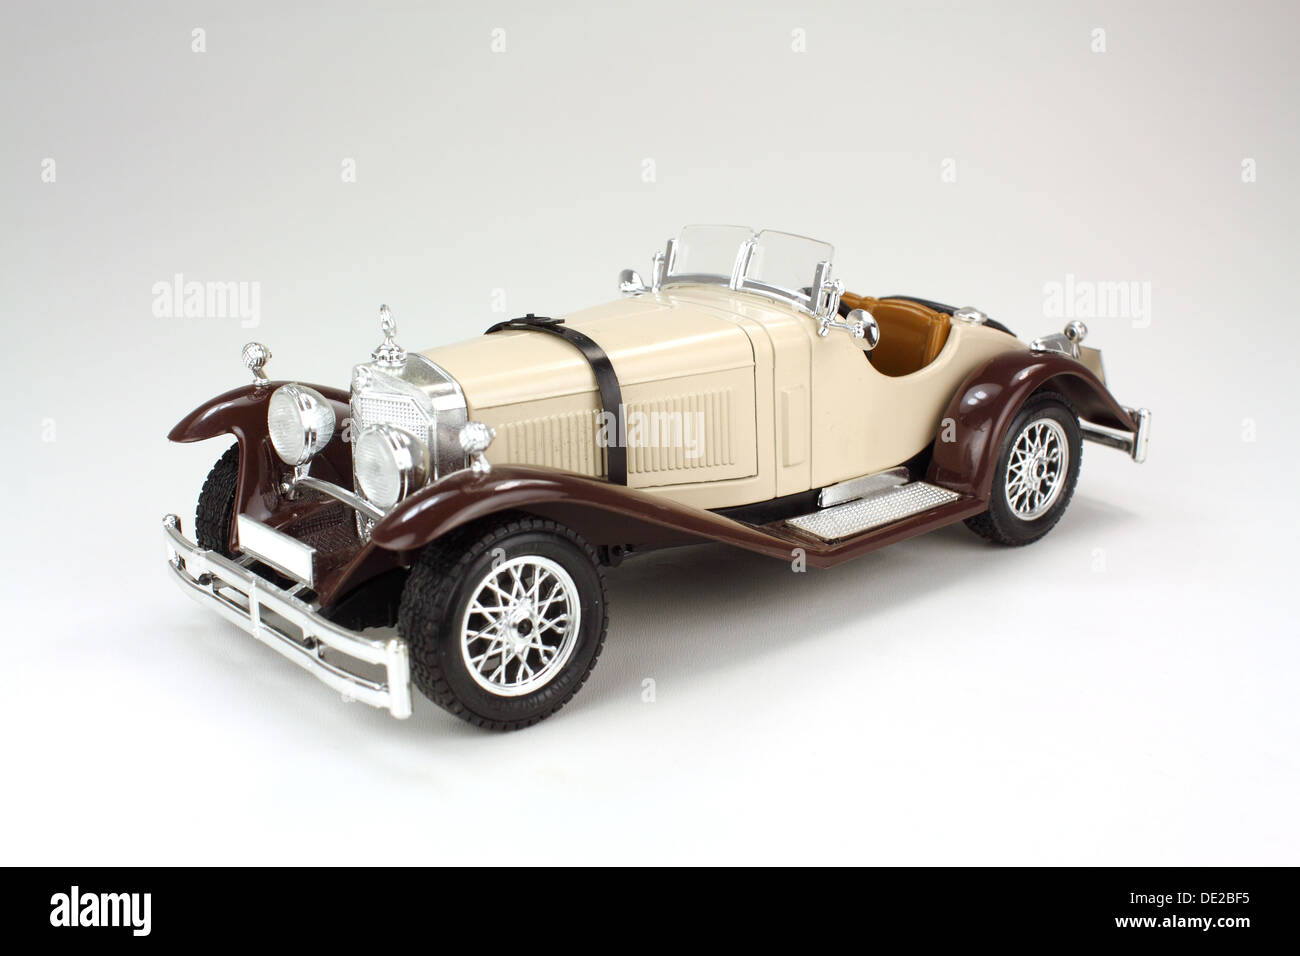 Model Of A Vintage Mercedes Benz Car On White Background Stock